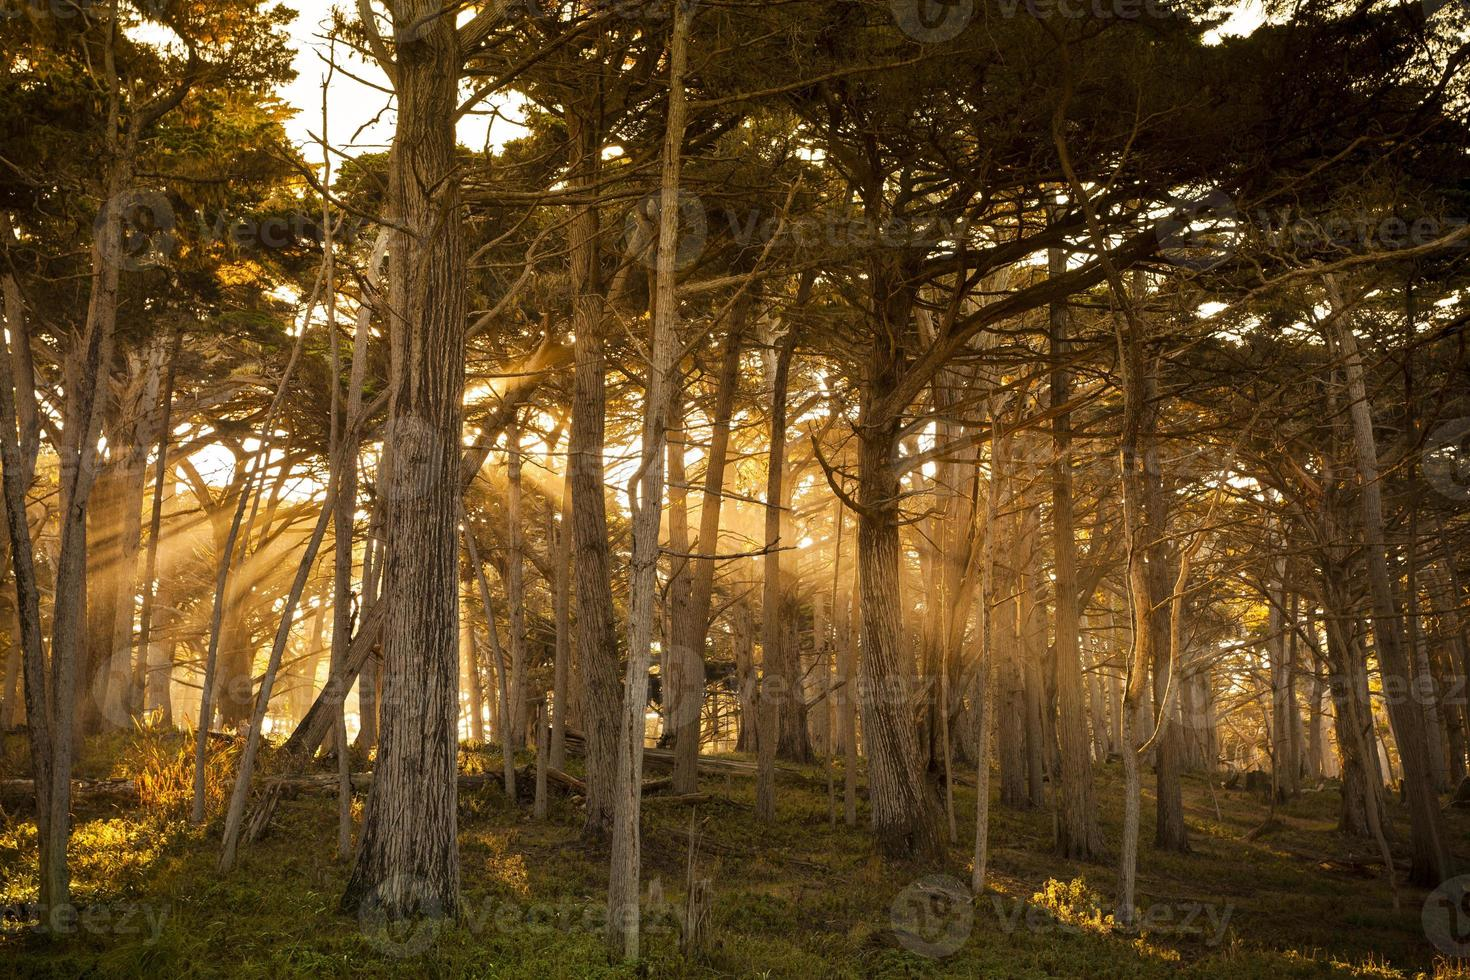 Fog surrounding Cypress trees in forest photo